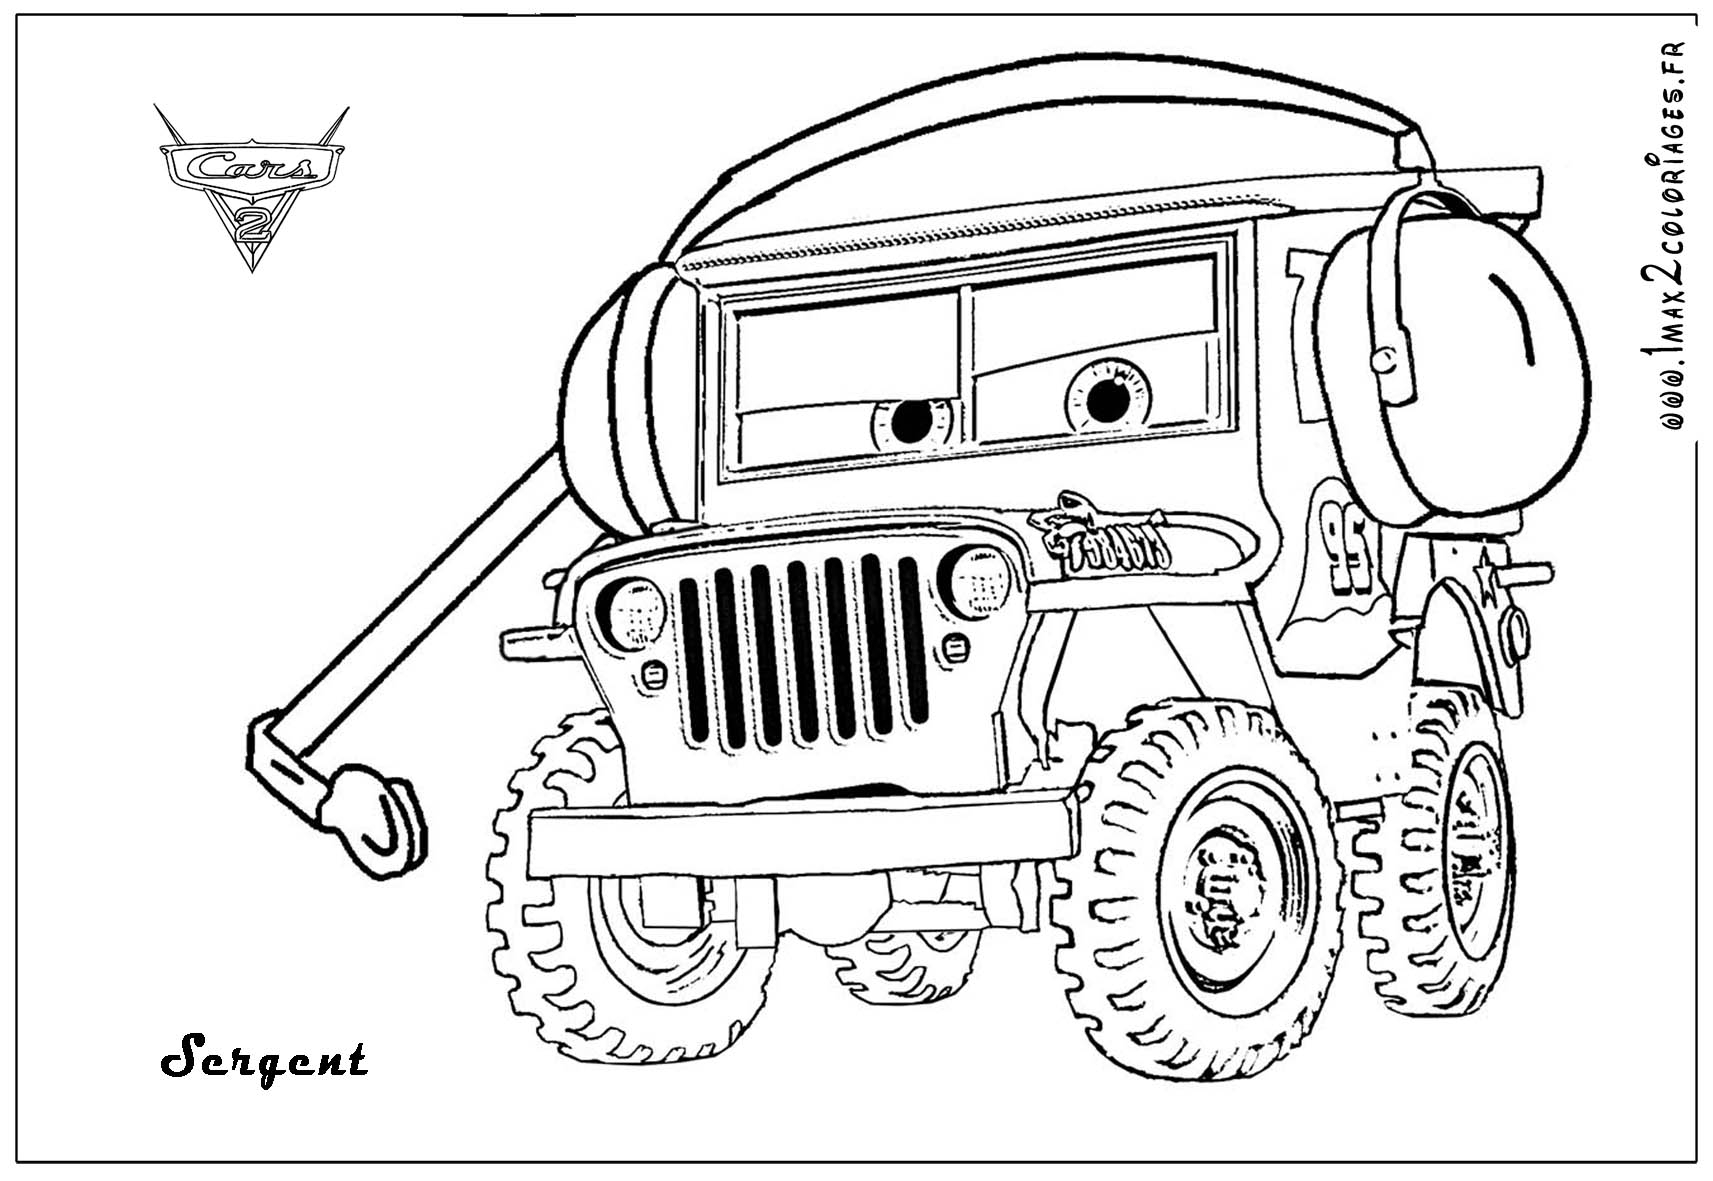 Free Disney Cars Coloring Pages – Color Bros Gallery Of Car Coloring Pages Disney Cars the Movie to Print Grig3 Download